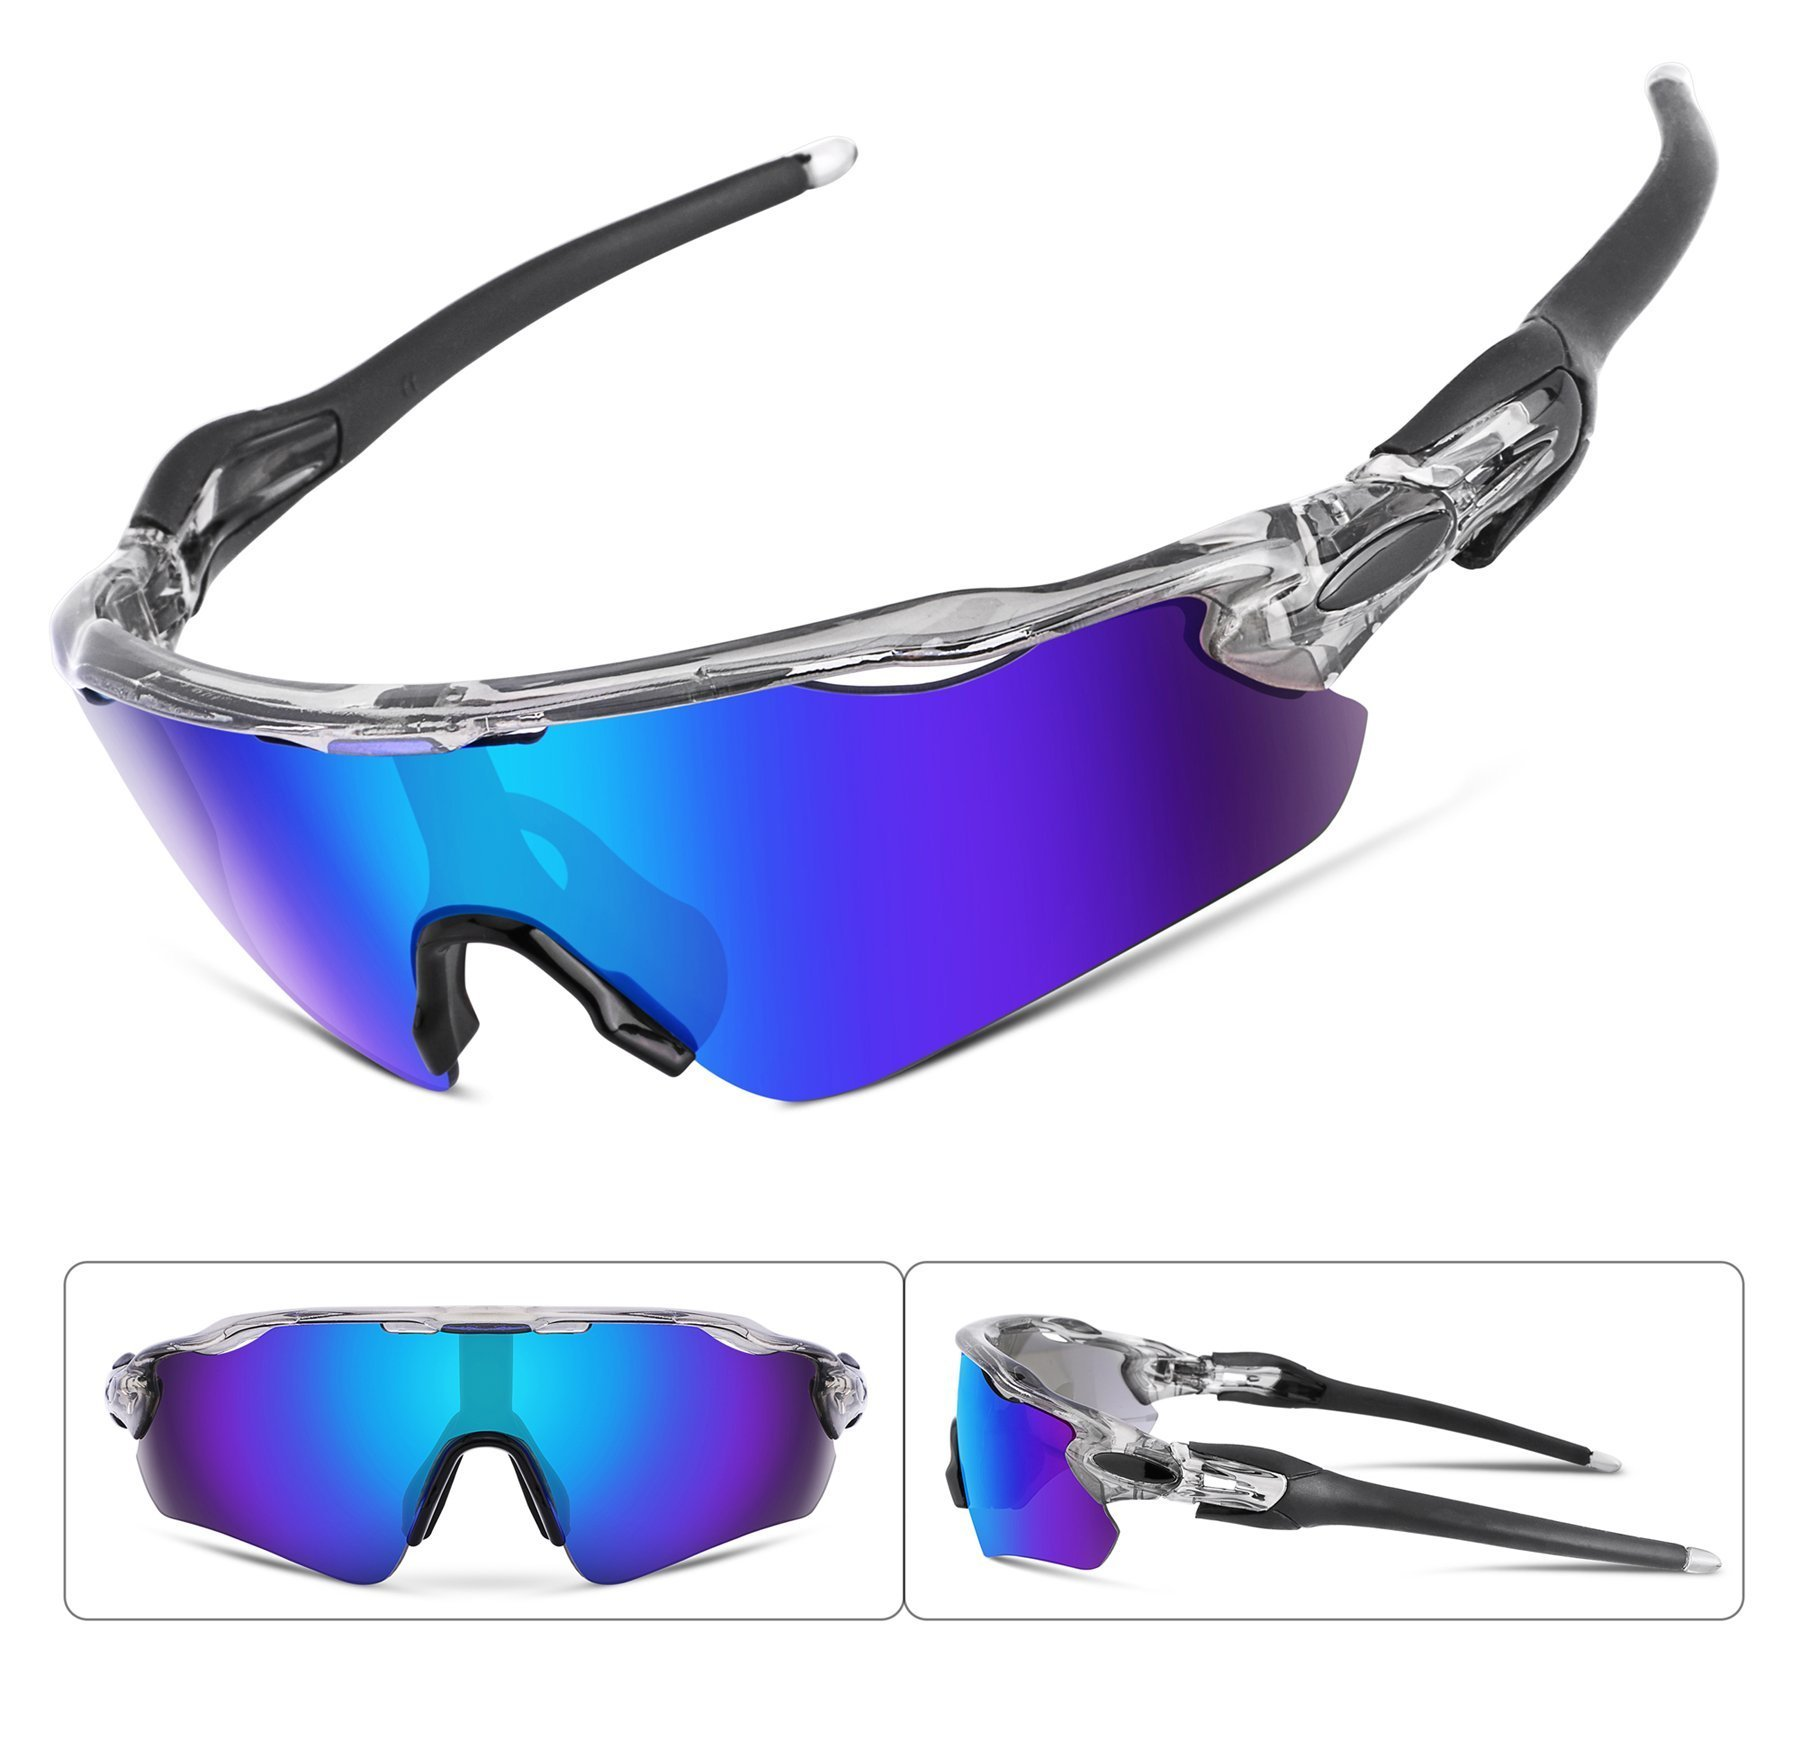 FEISEDY Polarized Sports Sunglasses Changeable Lenses TR90 Frame Cycling Running Fishing Golf Glasses B2280